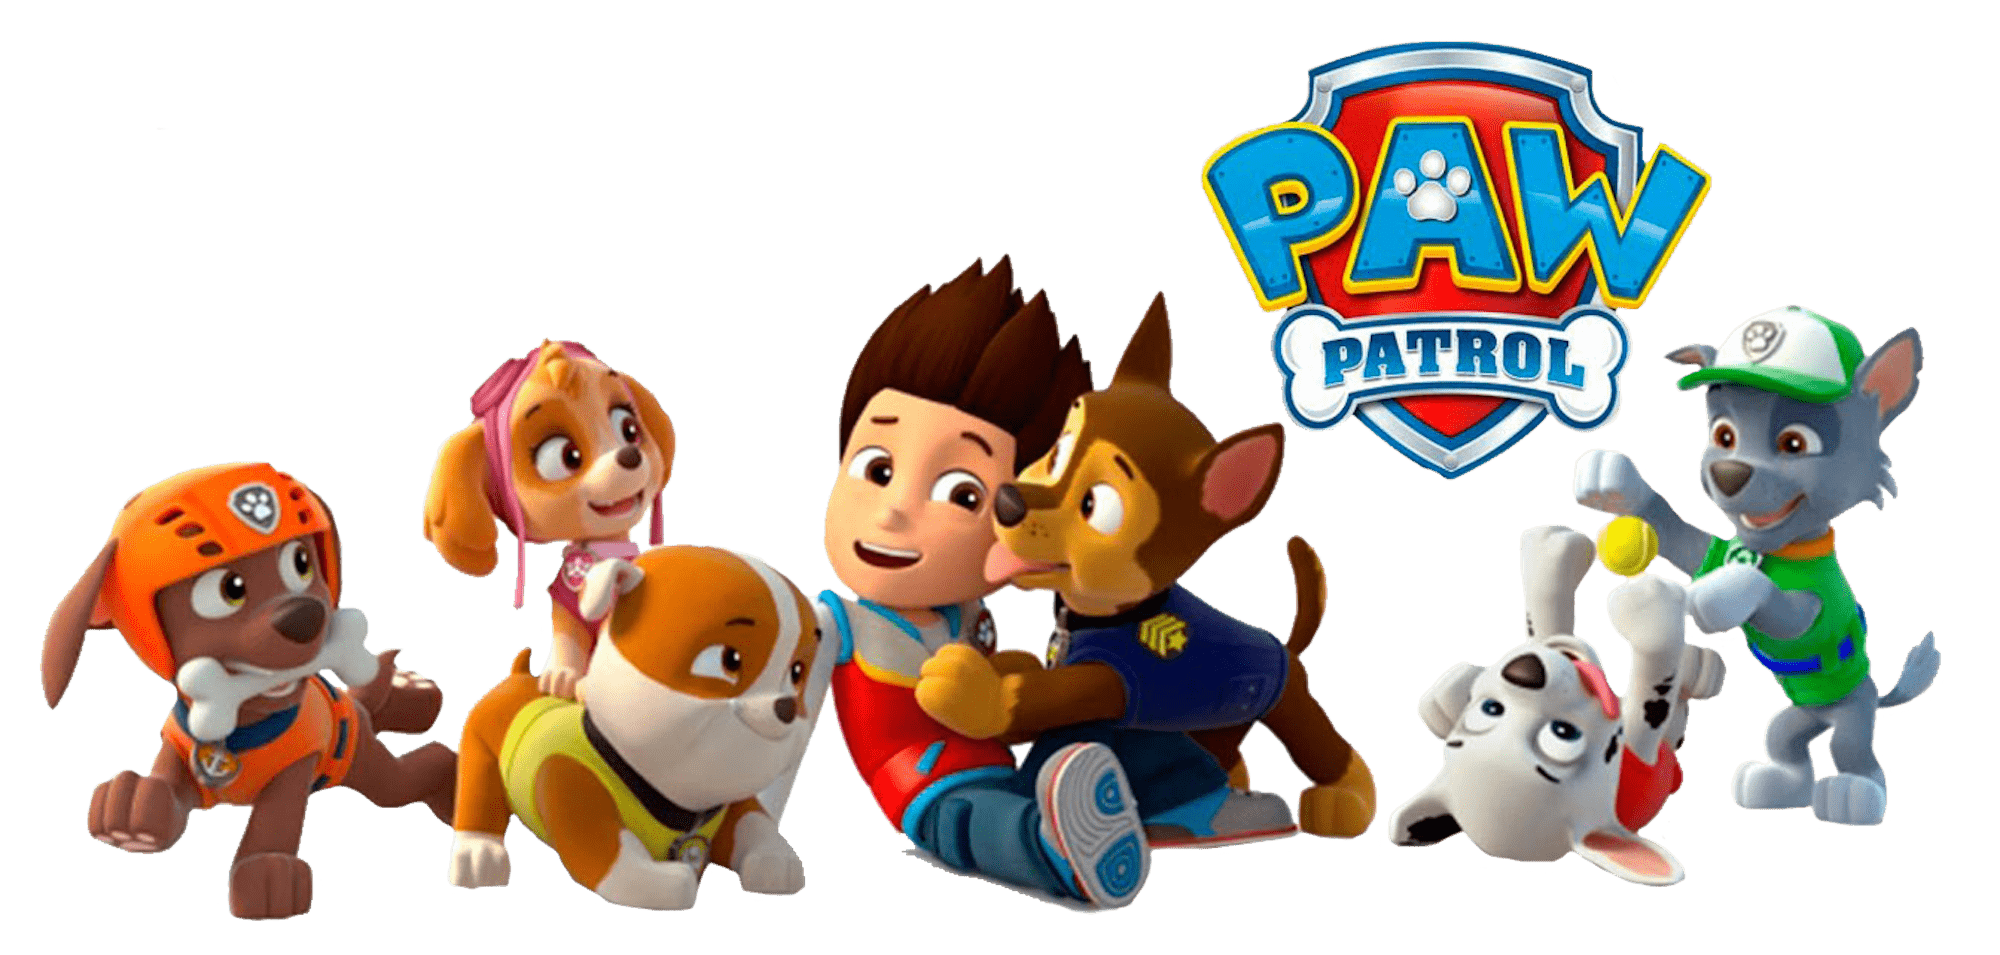 Paw patrol imagenes clipart vector stock Paw Patrol PNG HD Transparent Paw Patrol HD.PNG Images ... vector stock